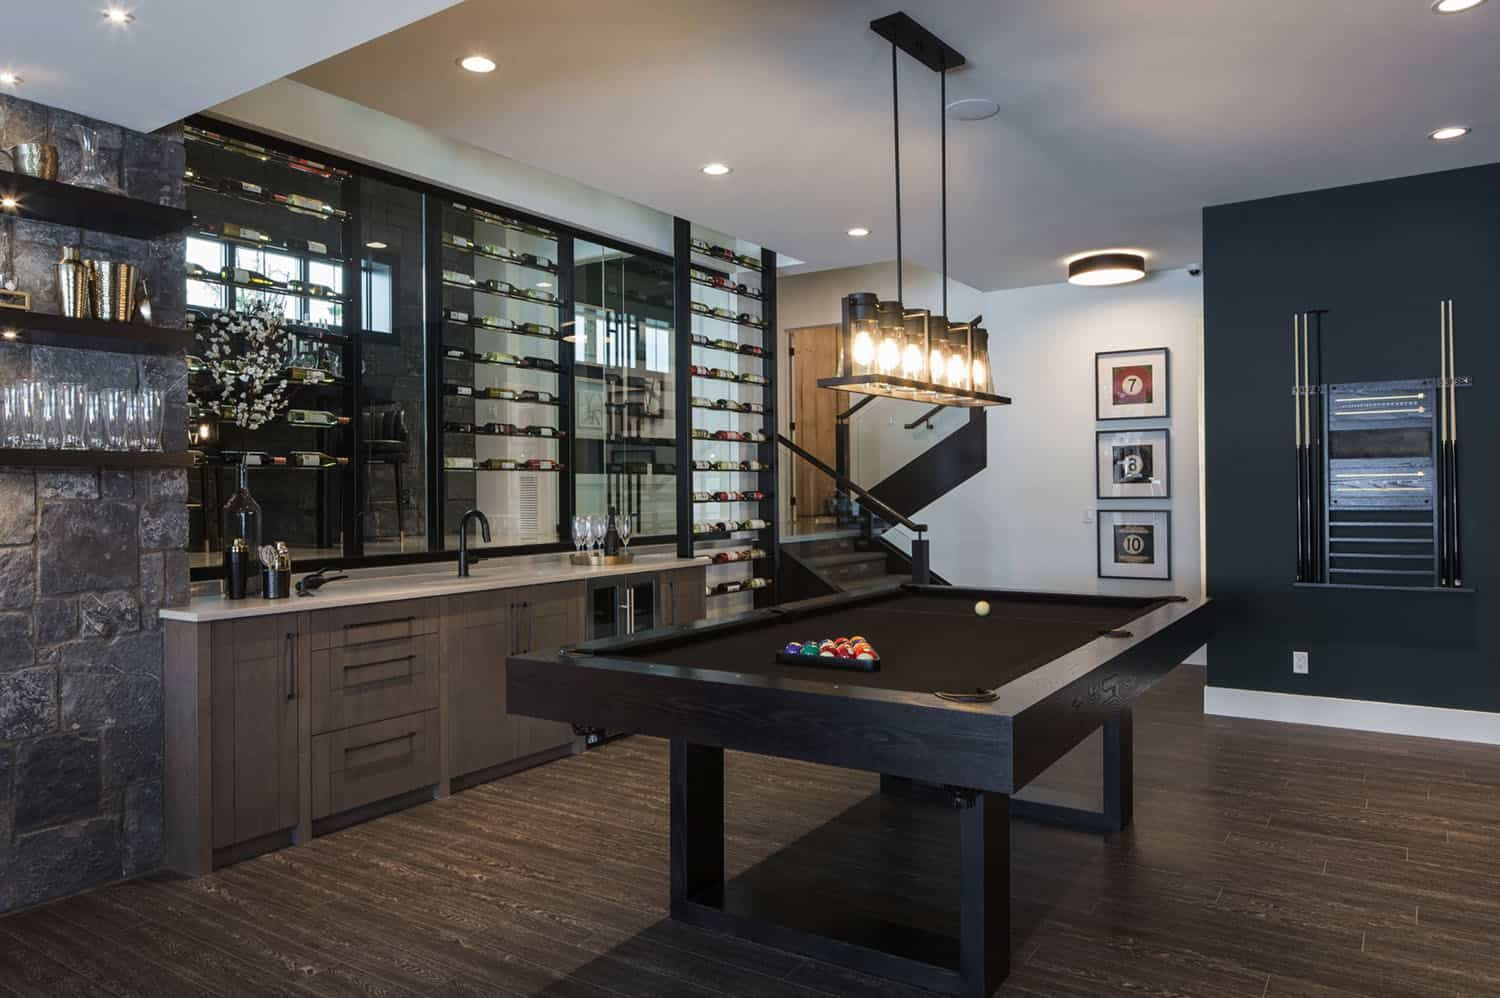 Inspiring Contemporary Home With Gorgeous Industrial Accents In Alberta In 2021 Home Game Room Bar Home Lottery Amazing ideas home bar game room